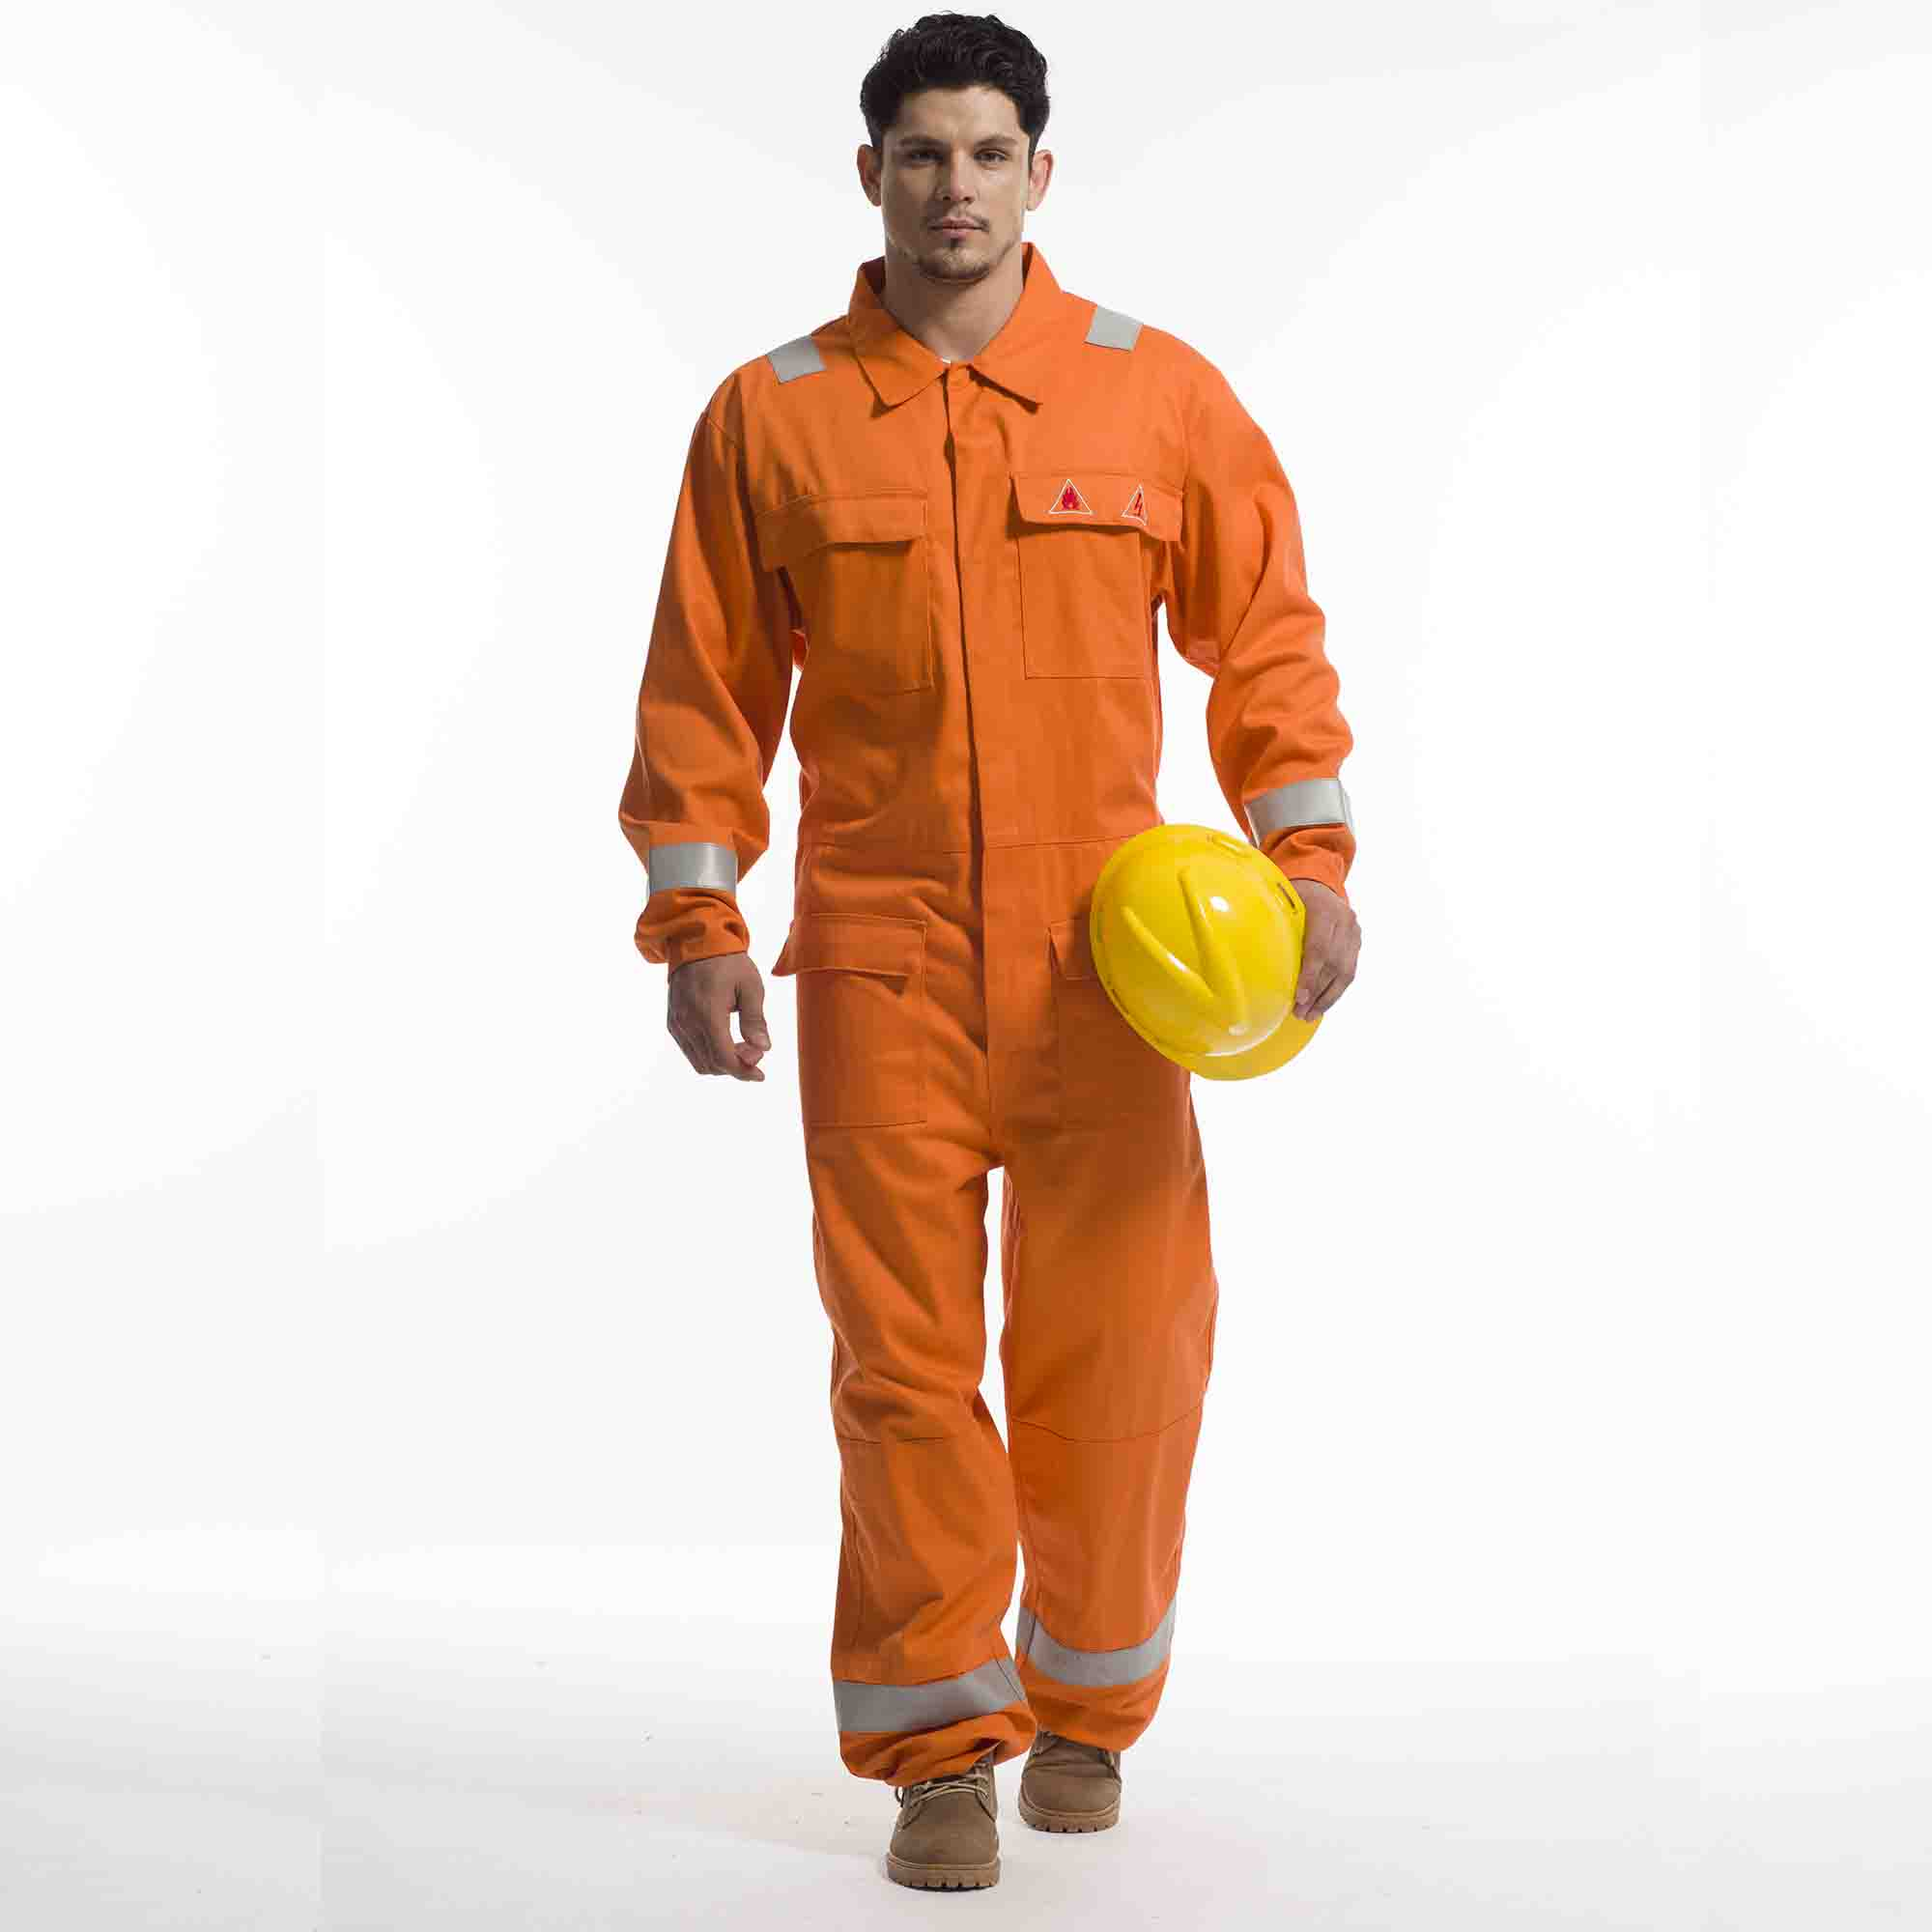 Flame Retardant Coverall Overall Reflective Work Outfit - KingCare | KingCare.net